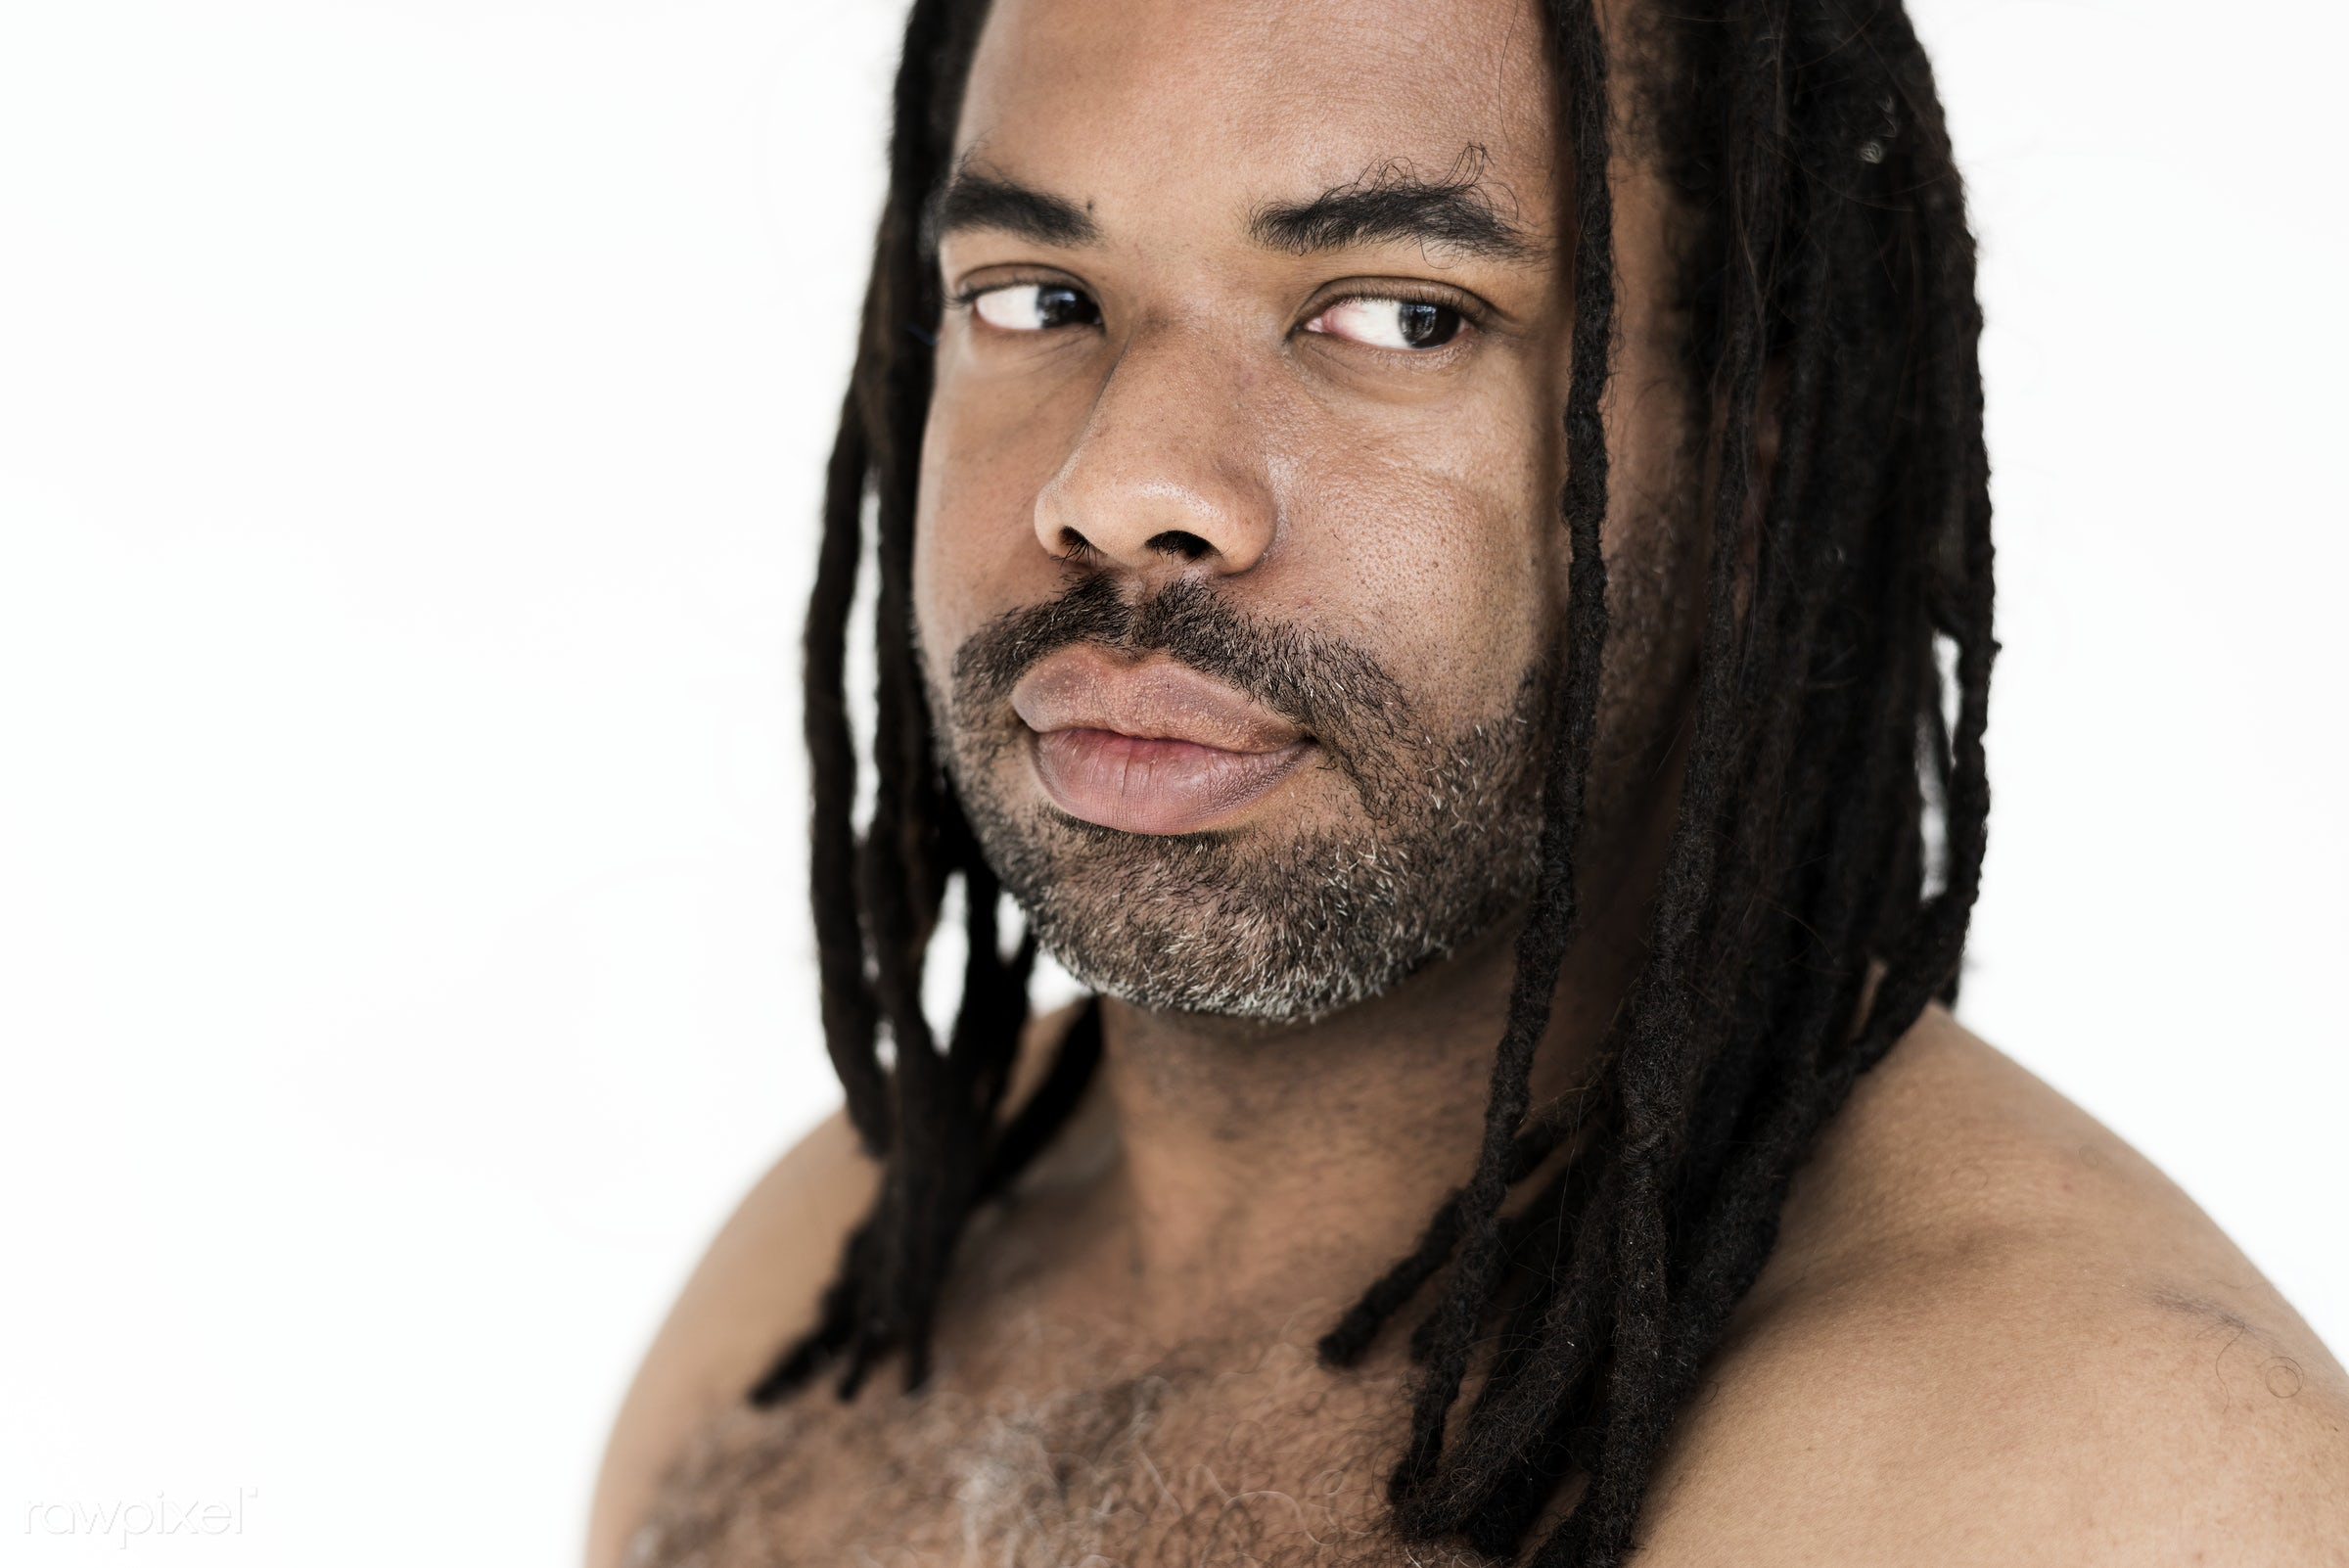 studio, expression, person, model, isolated on white, people, race, style, casual, lifestyle, men, man, isolated, dreadlocks...